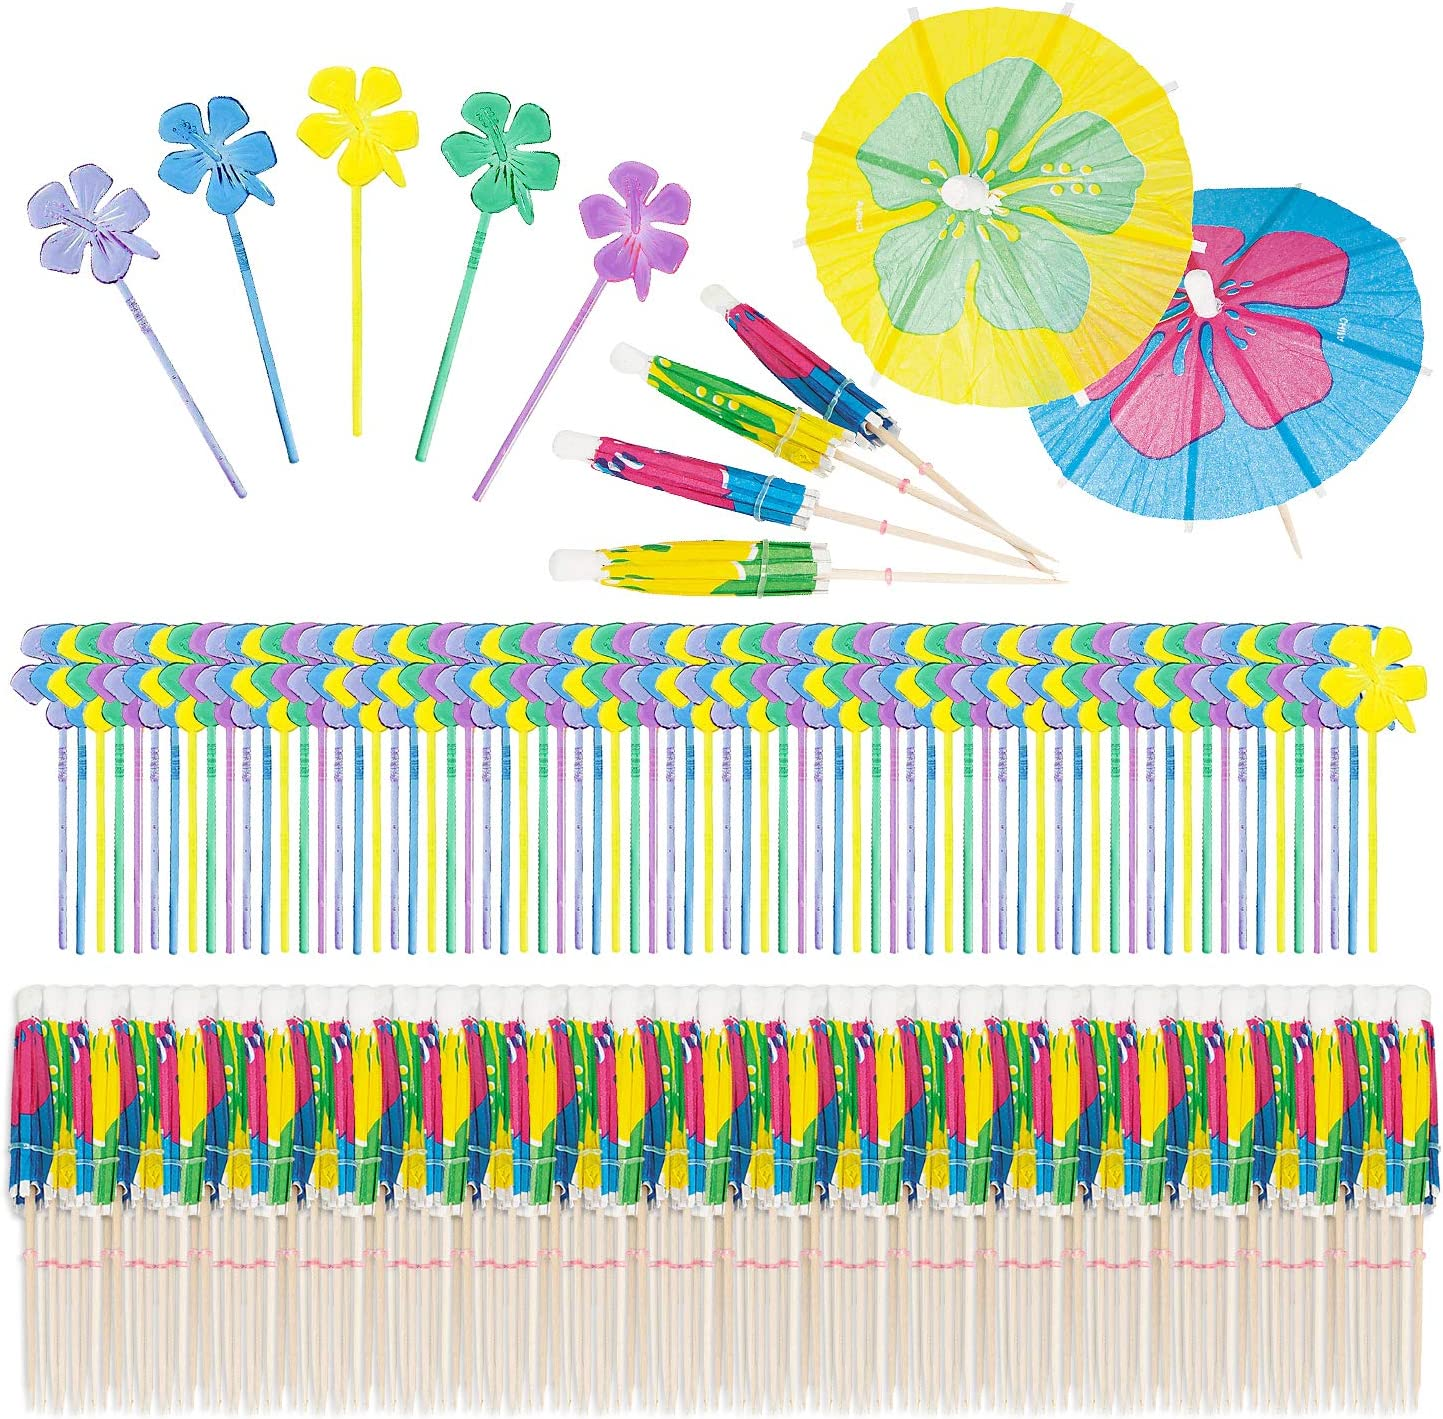 Cocktail Umbrellas and Food Picks for Luau Party - 144 count Umbrellas and 72 Food Picks (Hibiscus Flower Pattern)